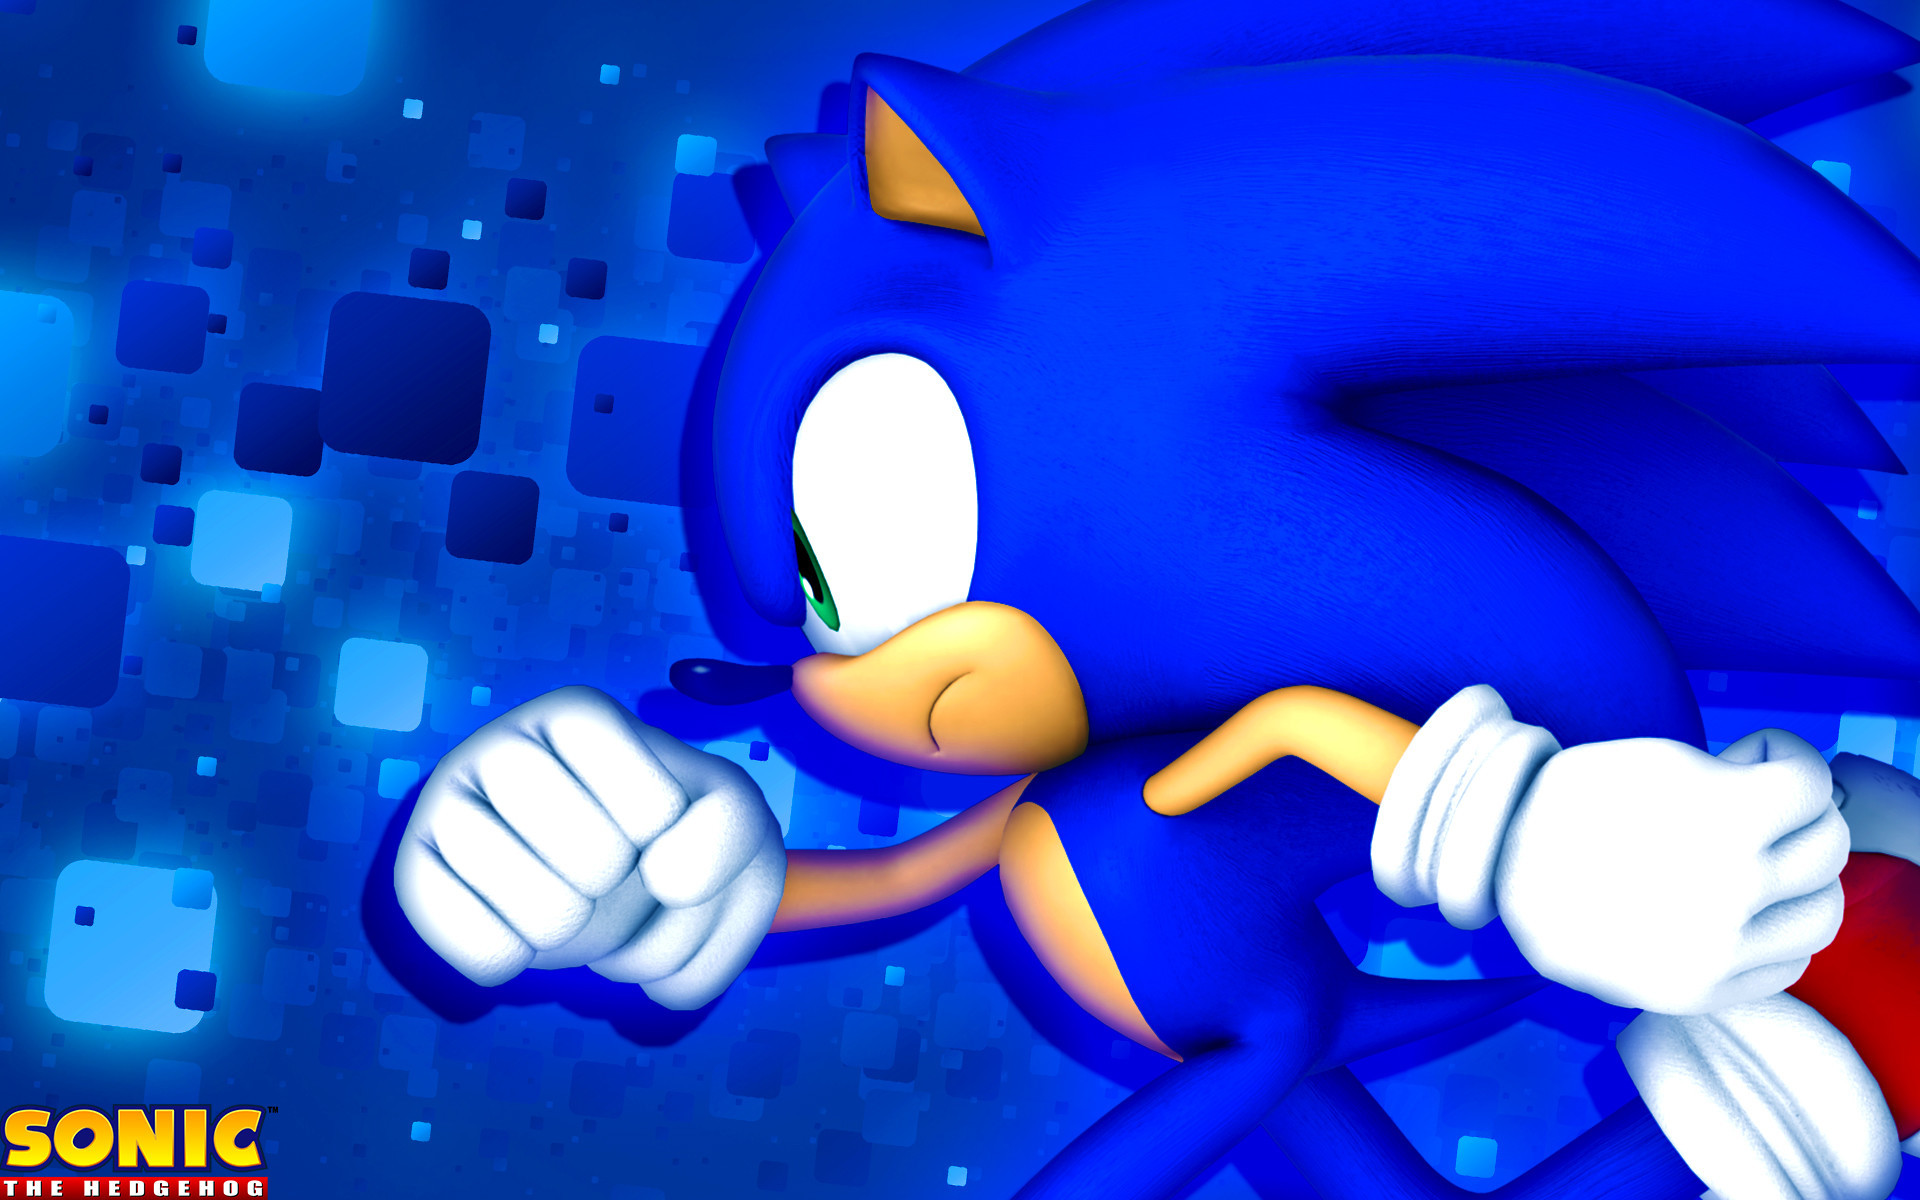 1920x1200  Video Game - Sonic the Hedgehog (2006) Super Shadow Super Silver  Super Sonic Wallpaper